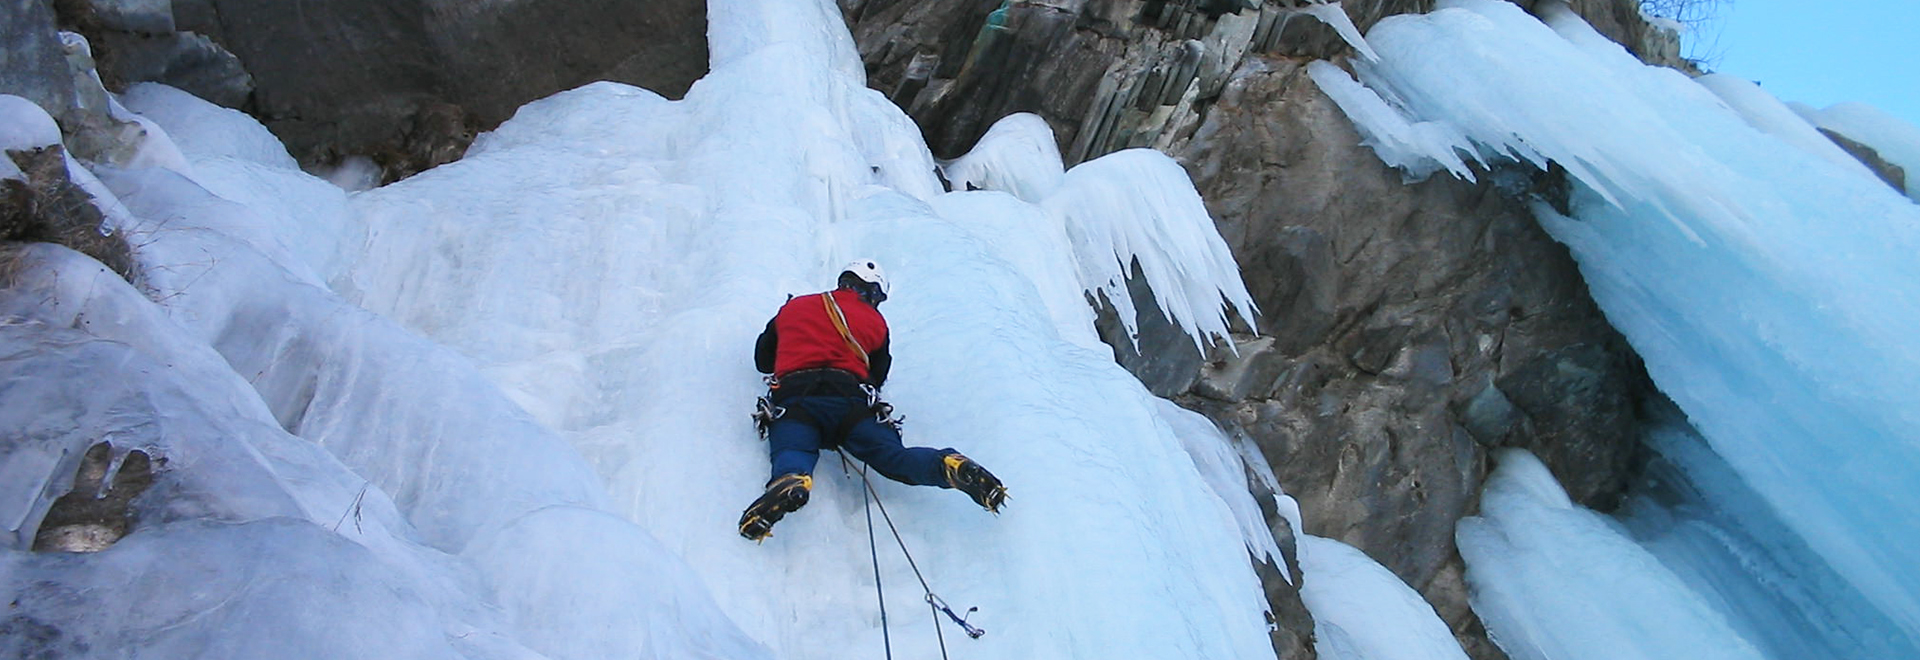 Icefalls in Aosta Valley